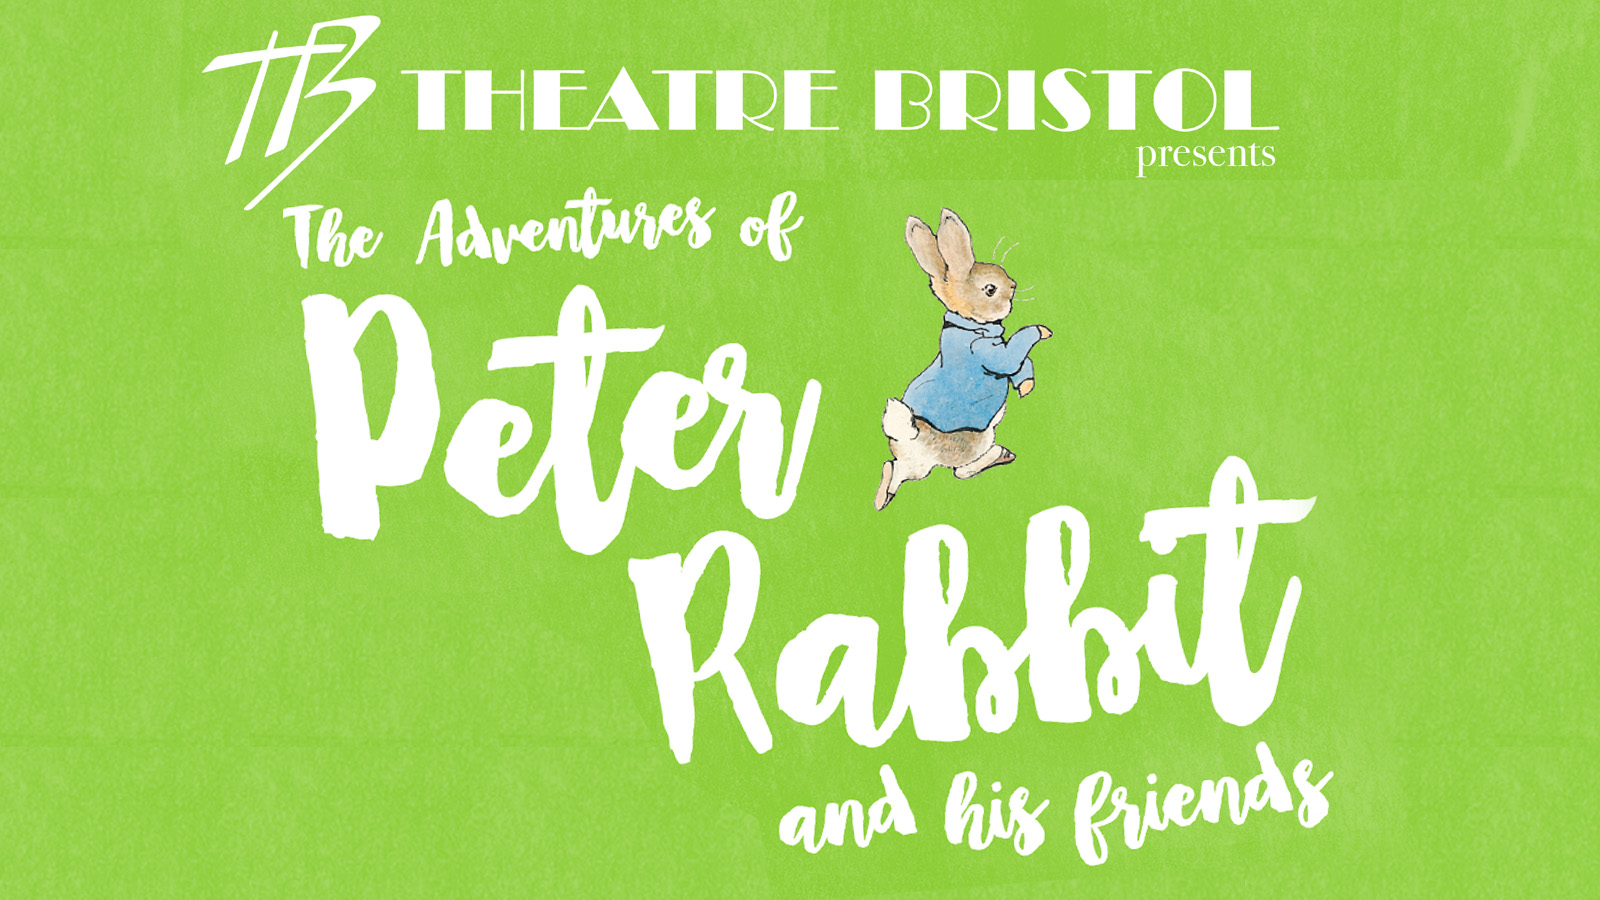 Theatre Bristol Peter Rabbit